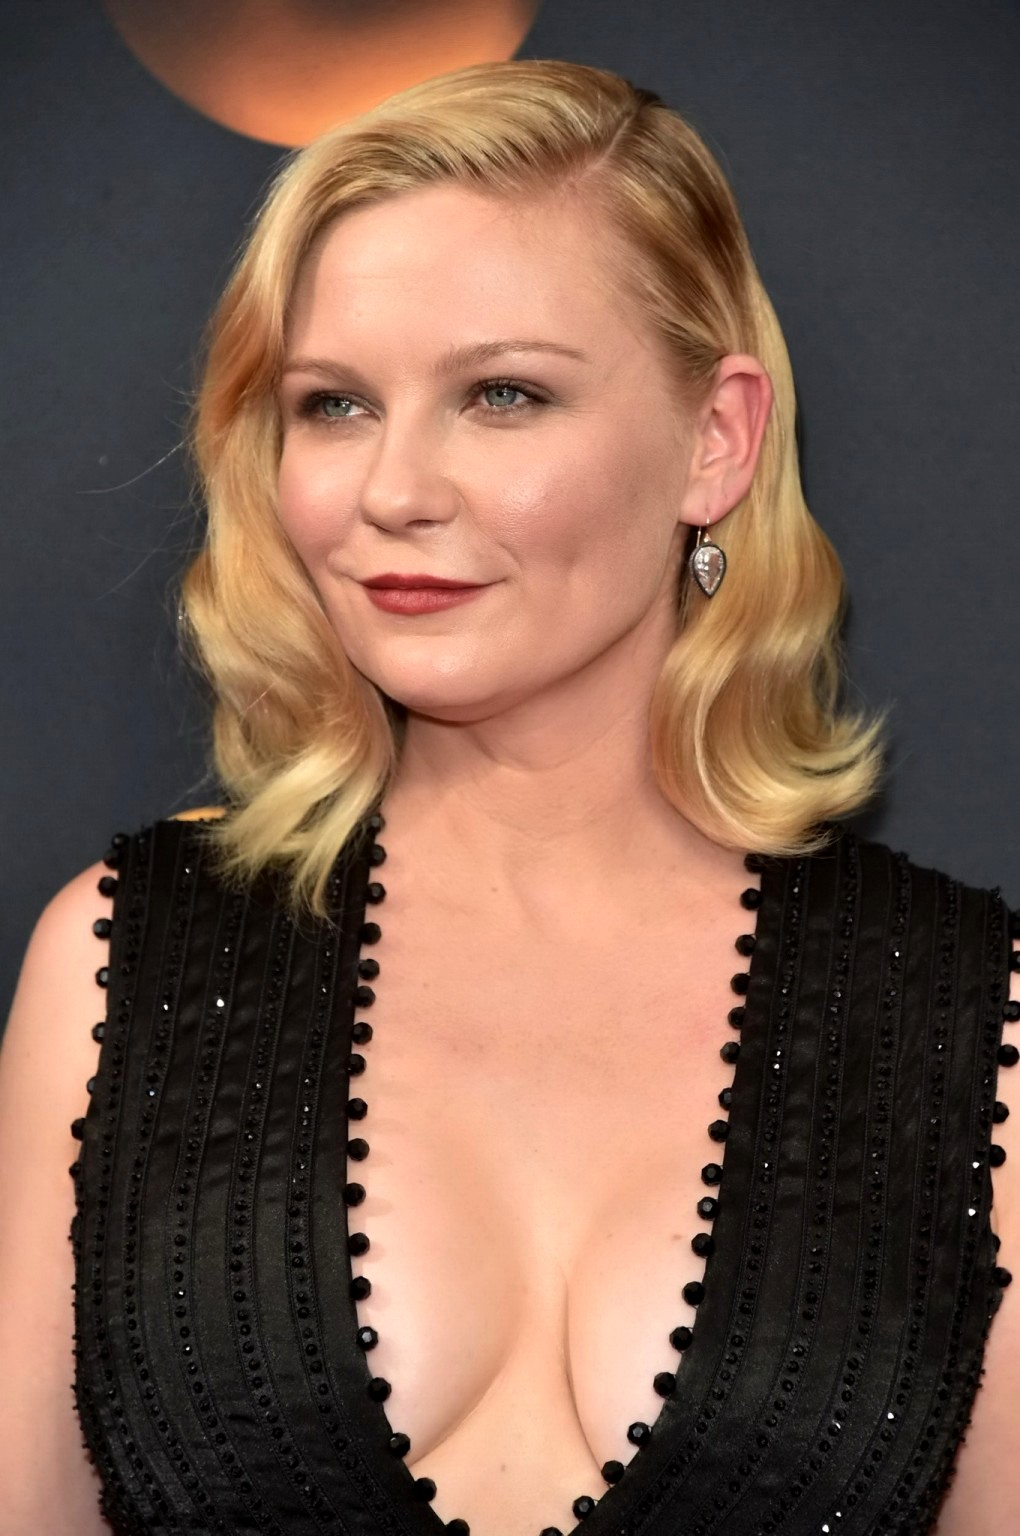 Kirsten dunst free sex tape random photo gallery